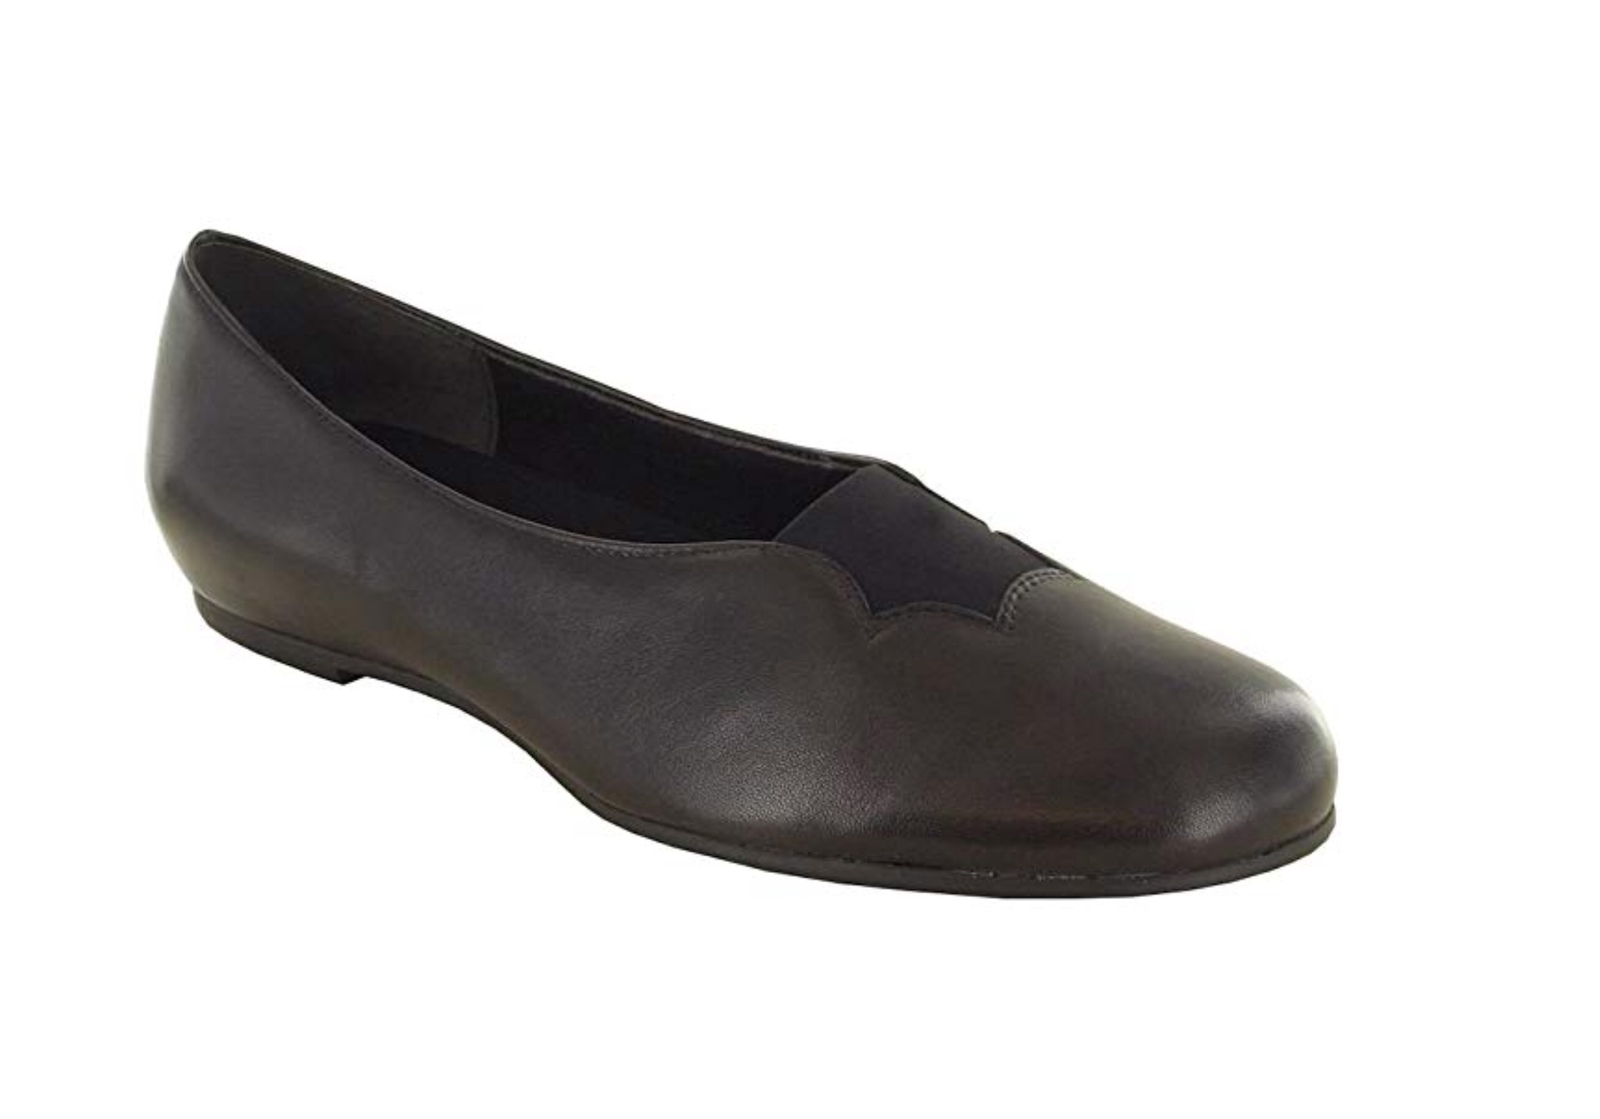 Primary image for NEW Munro American Size 5.5 Medium Women's Luna Shimmer Suede Round-Toe Shoe